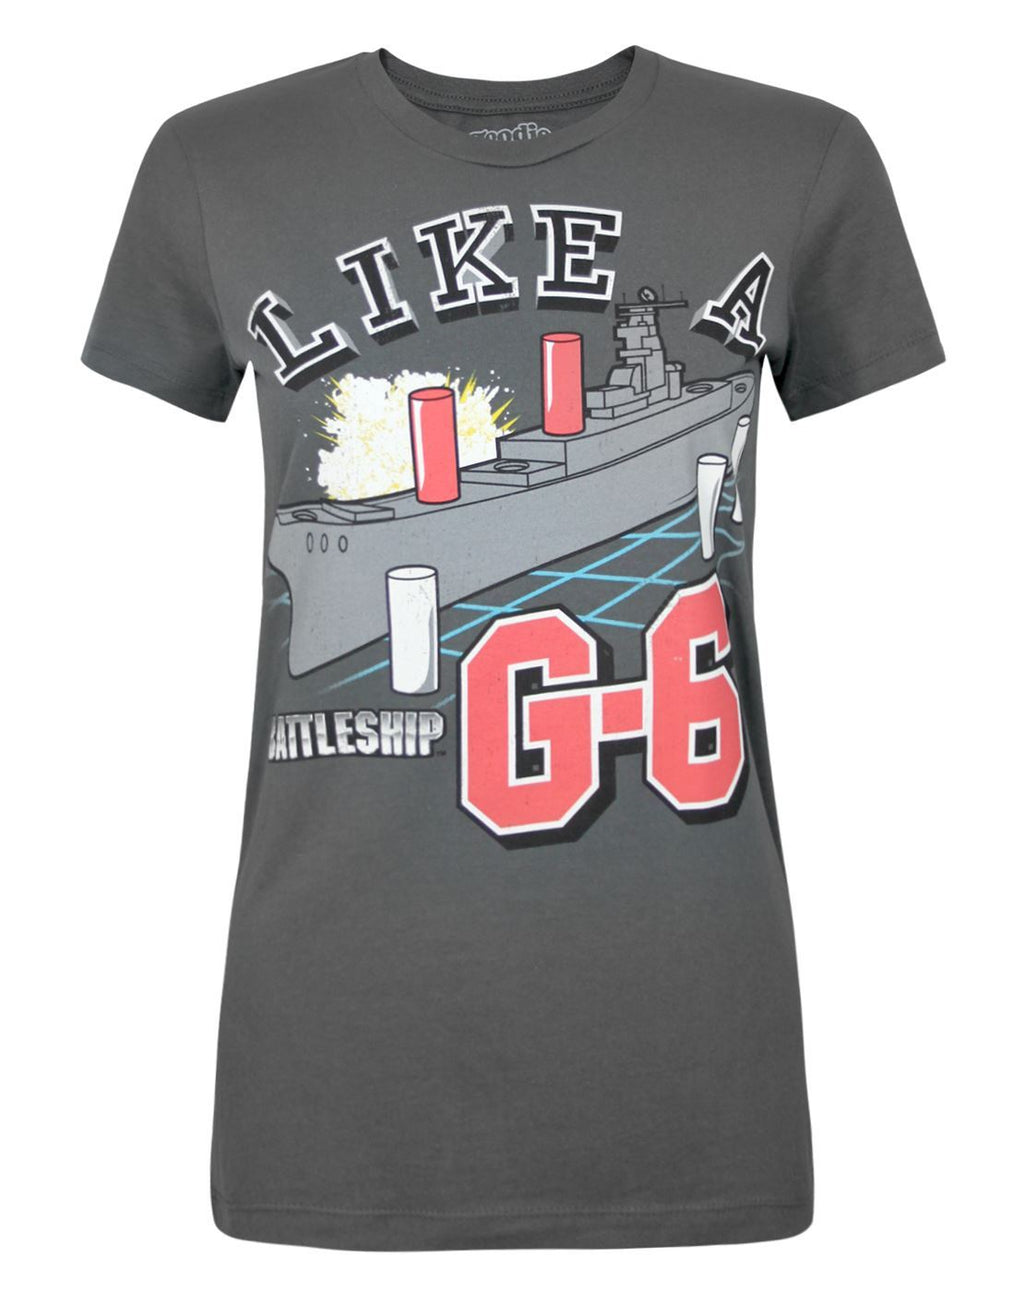 Goodie Two Sleeves Battleship Like A G6 Women's T-Shirt